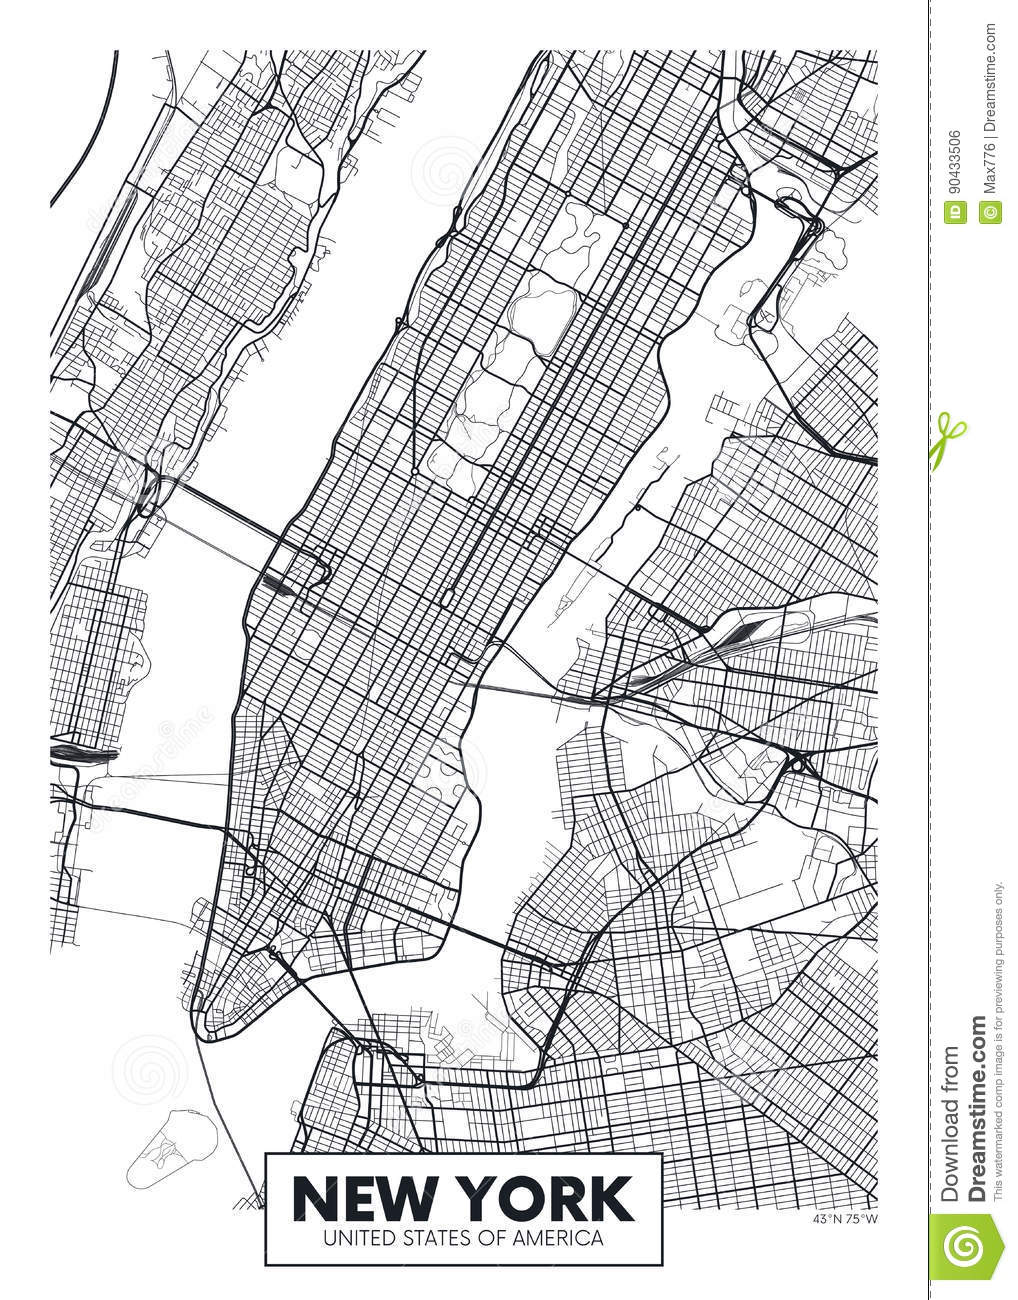 Ville New York De Carte Daffiche De Vecteur Illustration De